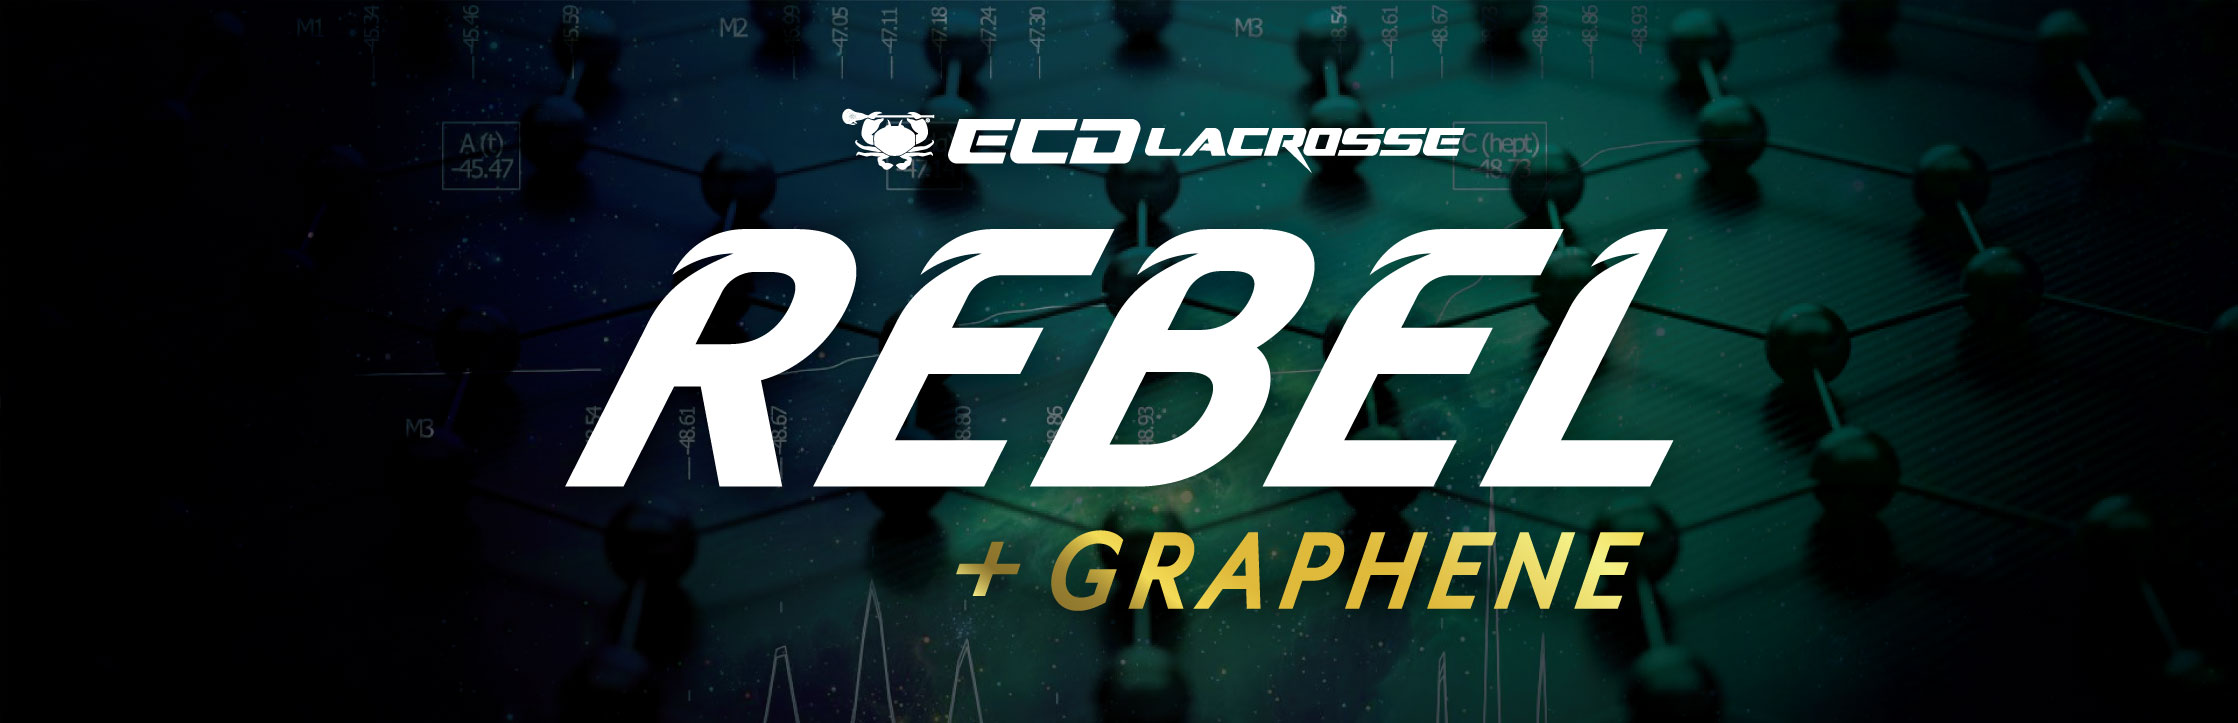 ECD Rebel Limited Edition Graphene Heads